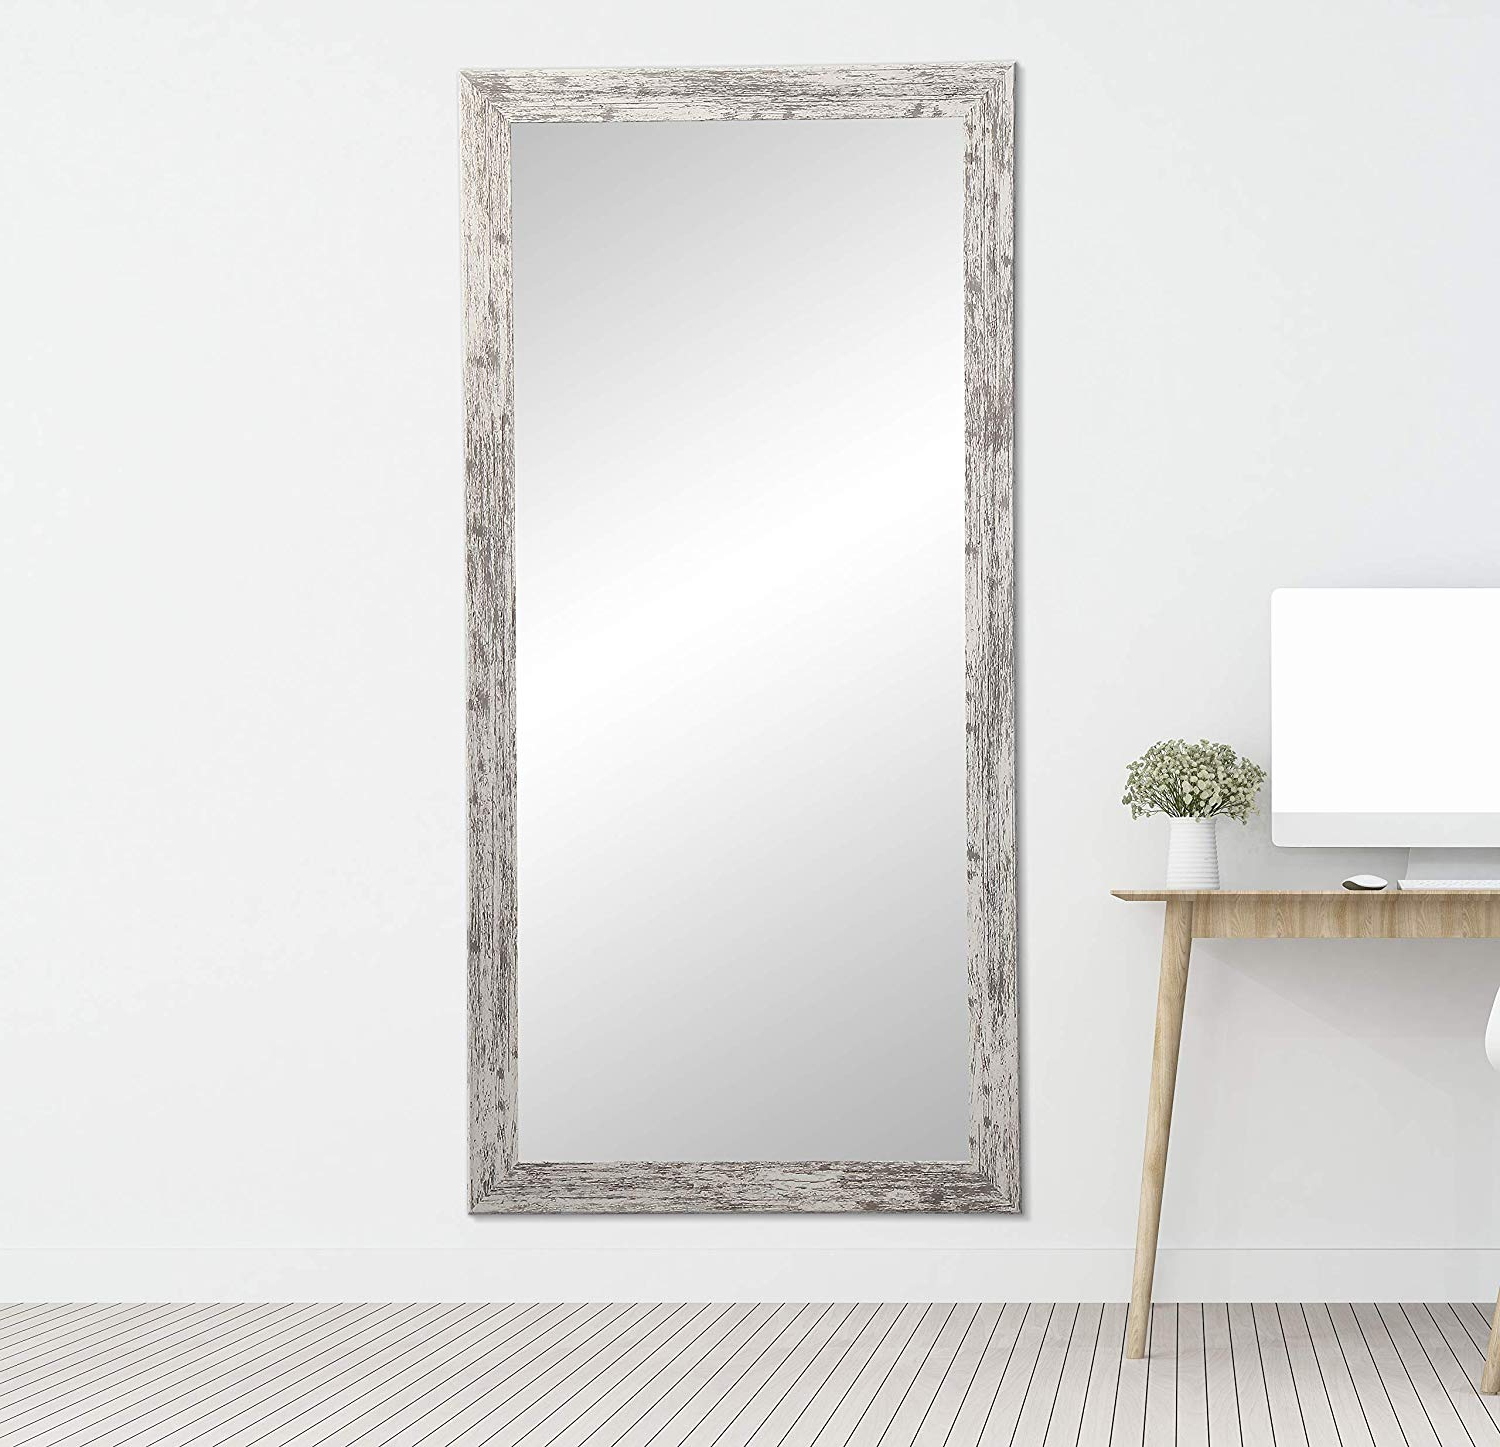 Popular Brandtworks Barn Wood Full Length Floor Vanity Wall Mirror, 32 X 71, Heavy Distressed White/gray Throughout Floor To Wall Mirrors (View 5 of 20)